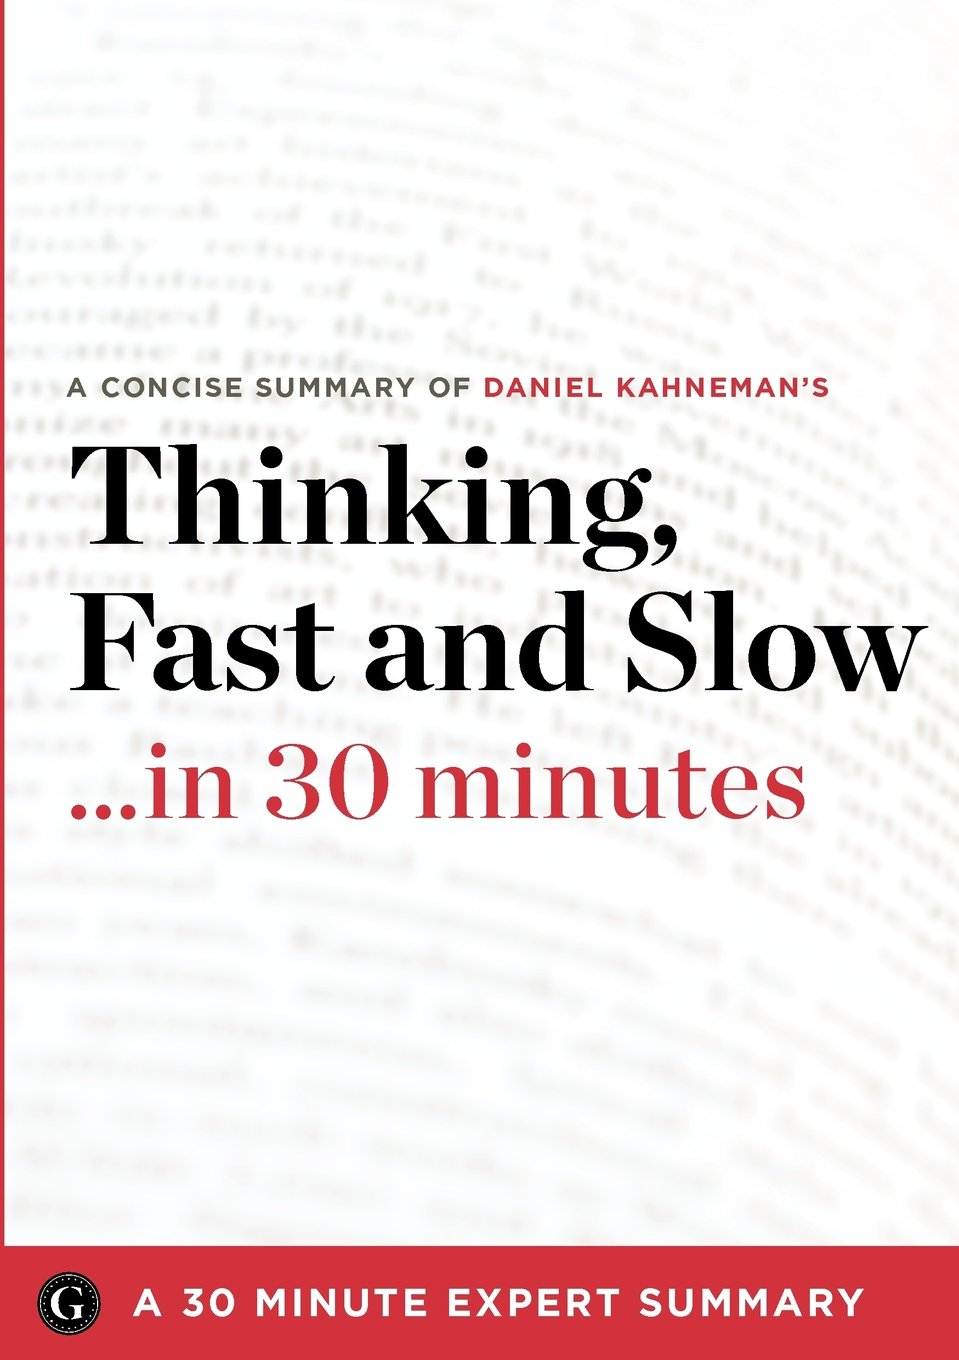 Thinking, Fast and Slow by Daniel Kahneman (30 Minute Expert Summary)  Paperback – December 19, 2012